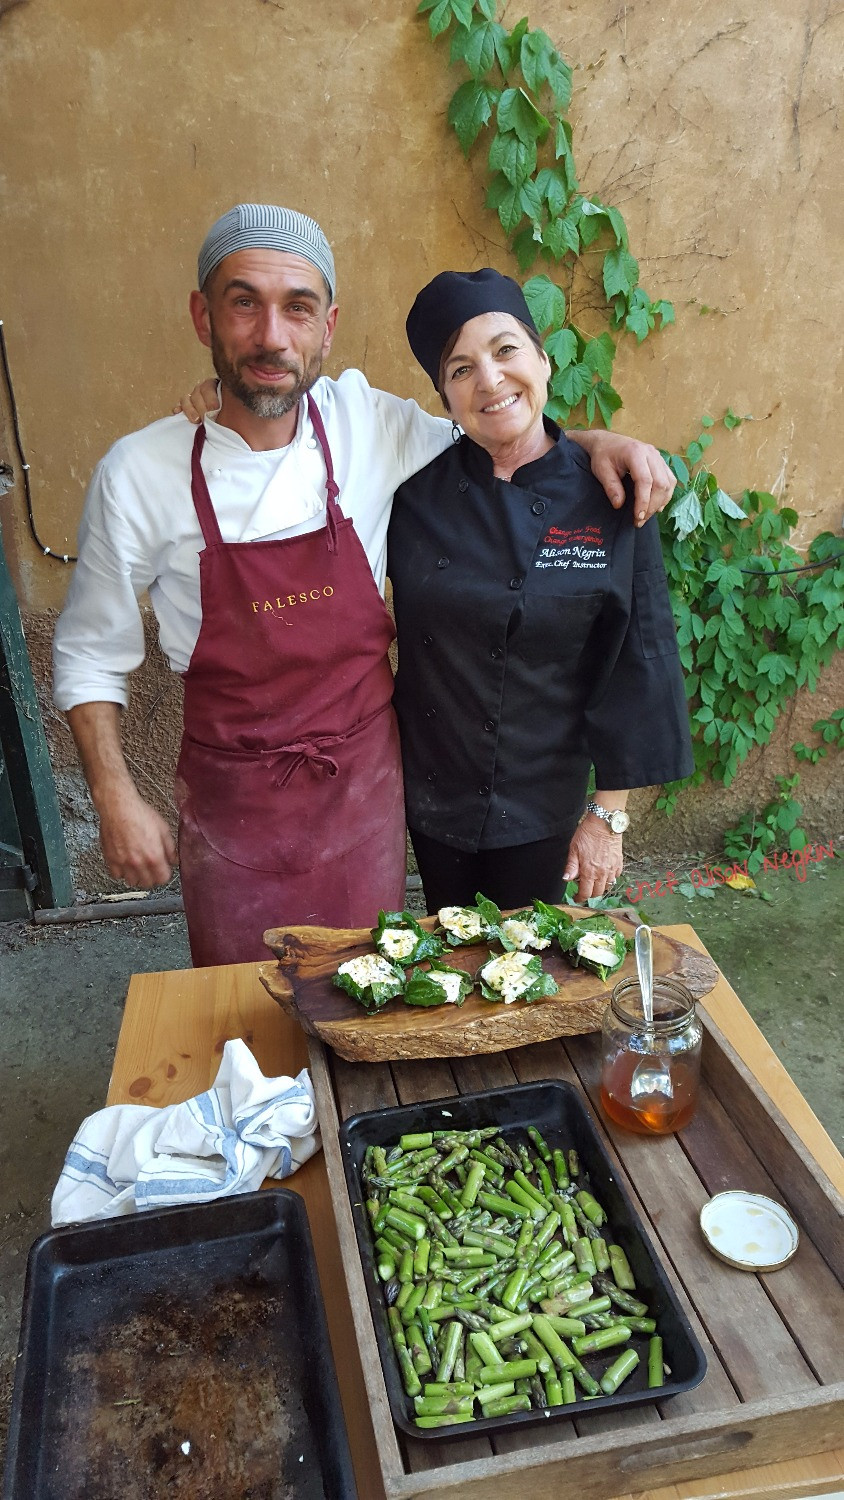 Chef Alison with house chef, Giorgio Castellani